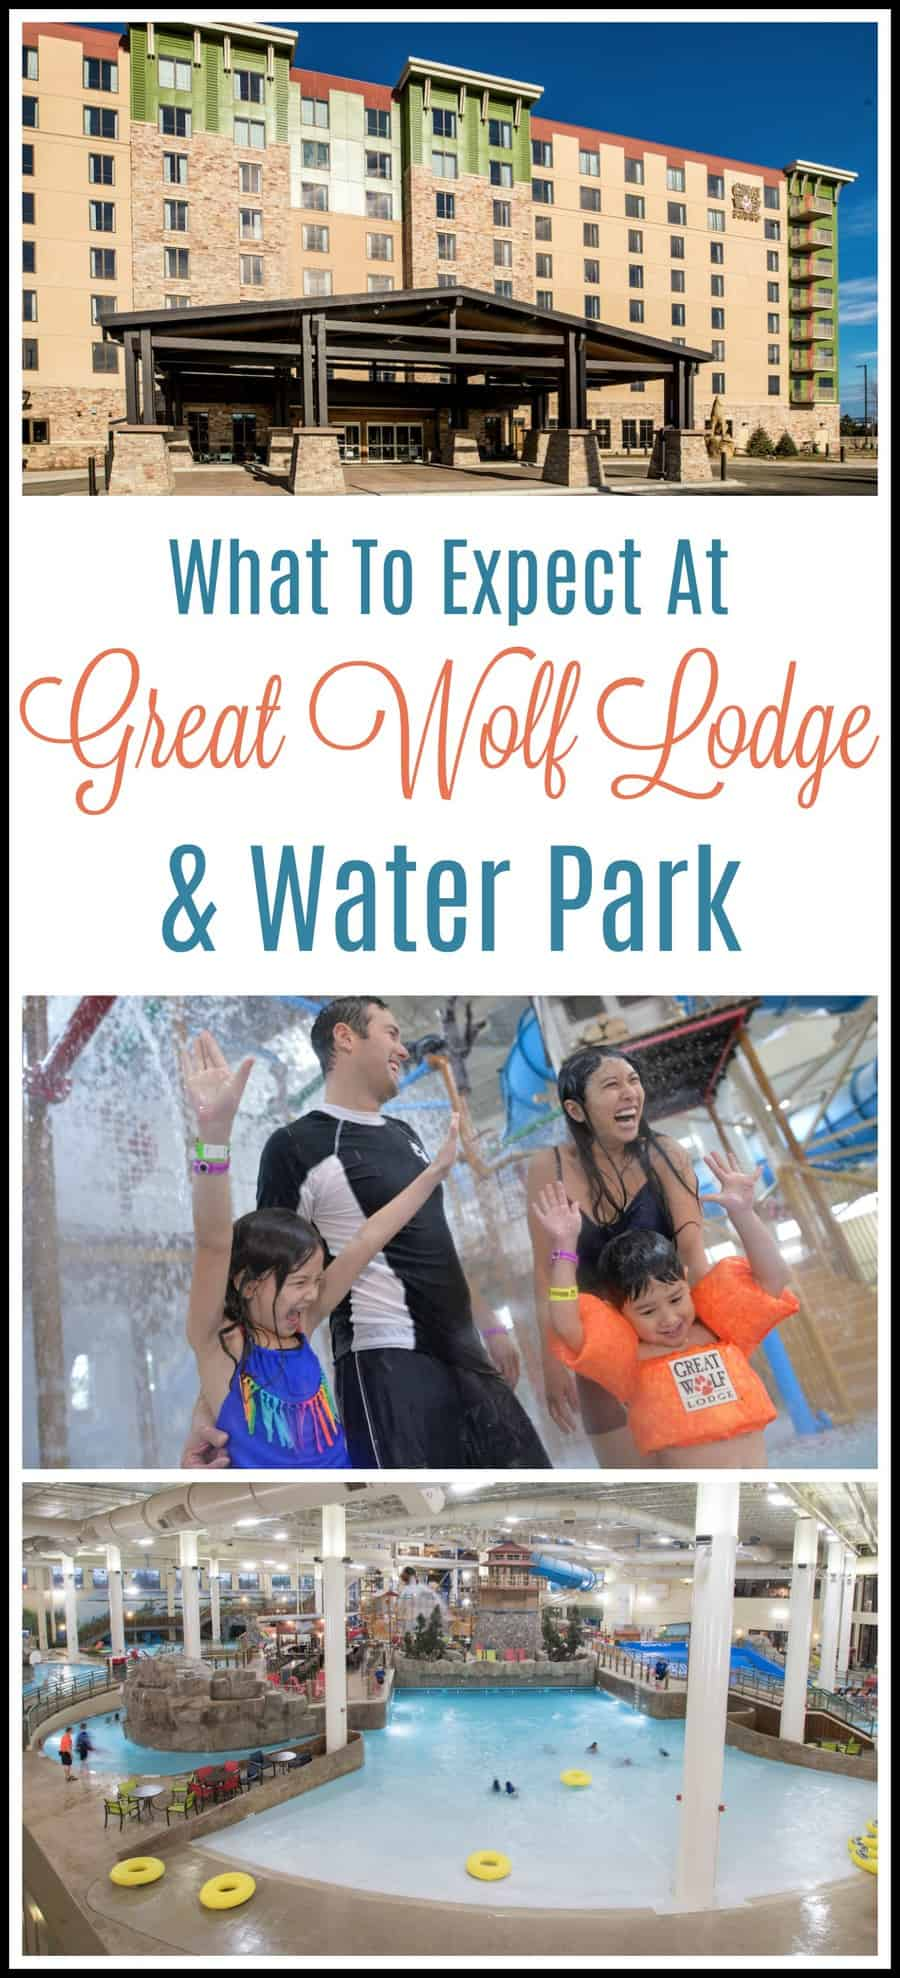 Visit The Great Wolf Lodge Bloomington, MN - What To Expect At Great Wolf Lodge And Waterpark - Visit The Great Wolf Lodge Water Park In Bloomington, MN